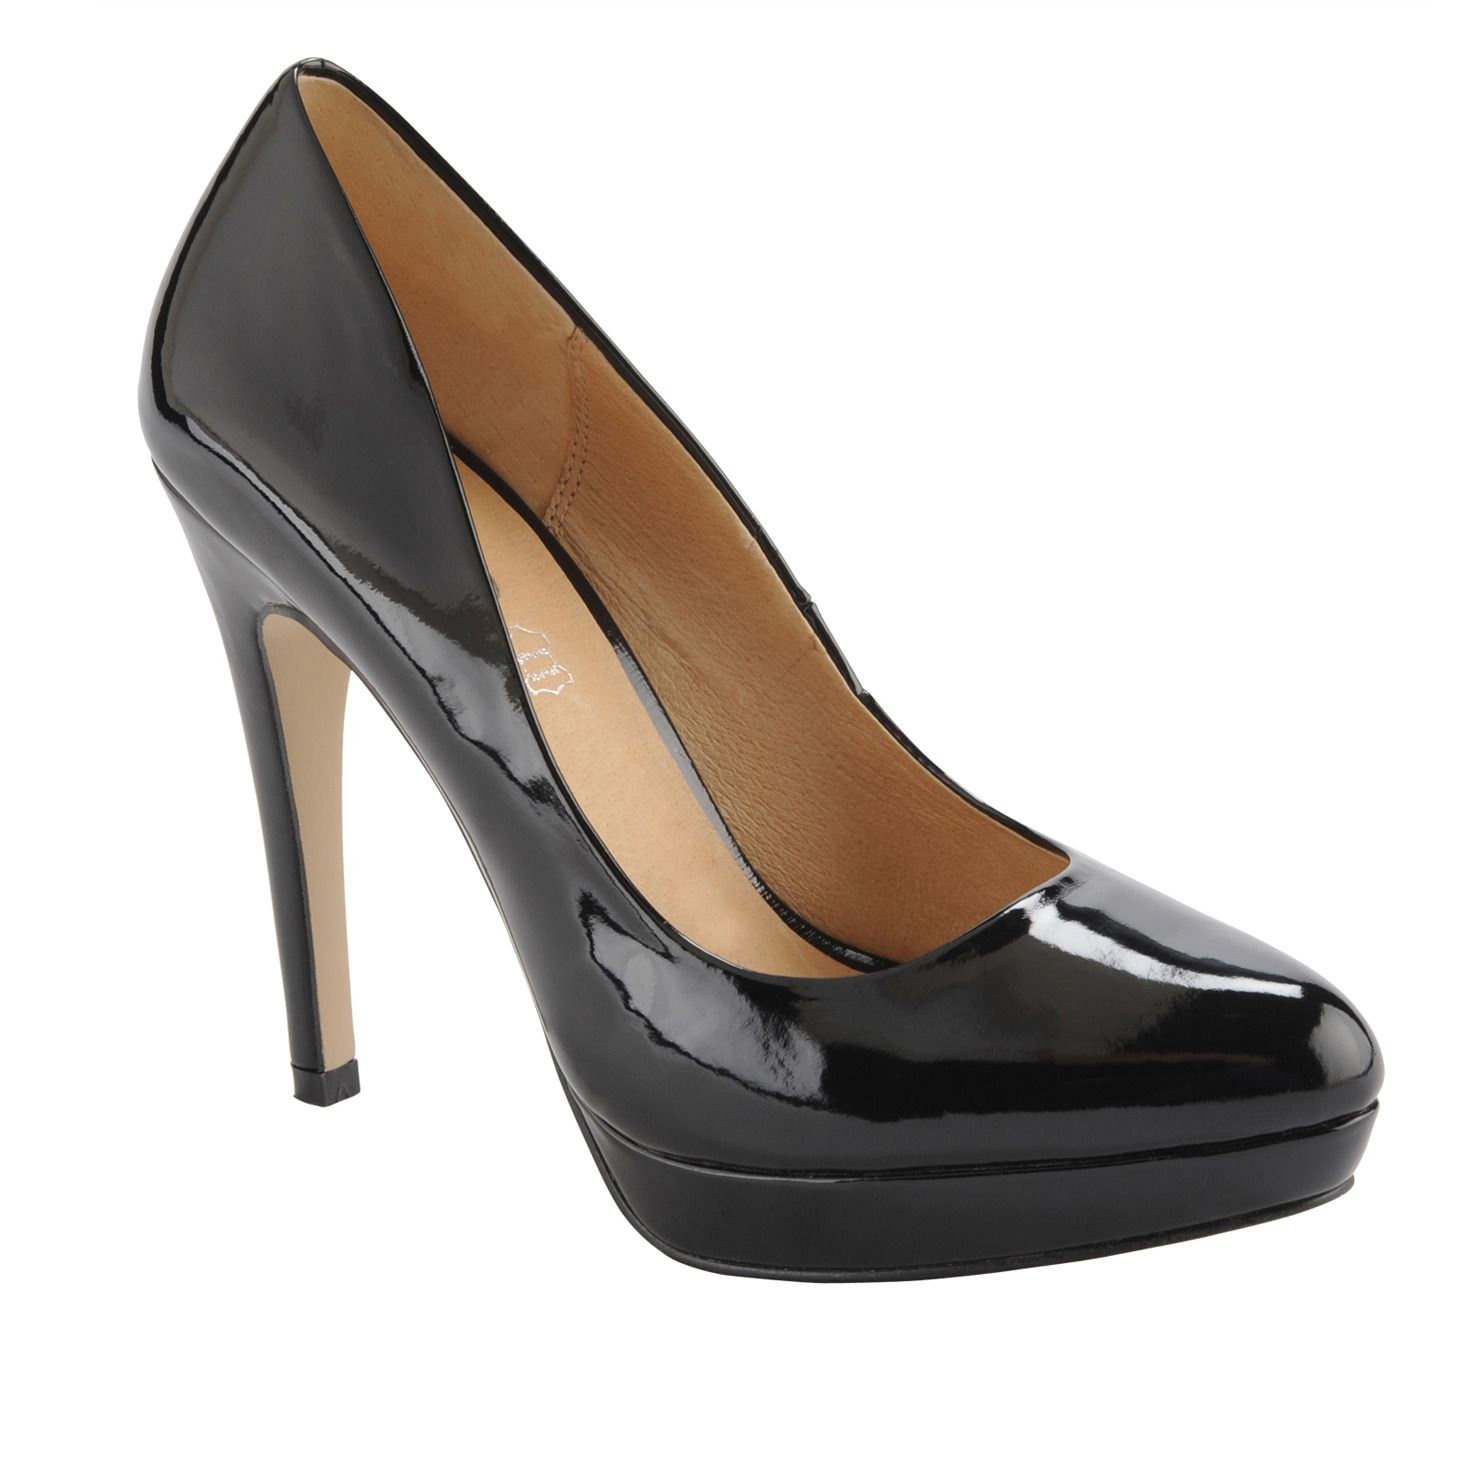 edf1acdfe50f SHAMBLEY - women s high heels shoes for sale at ALDO Shoes ...